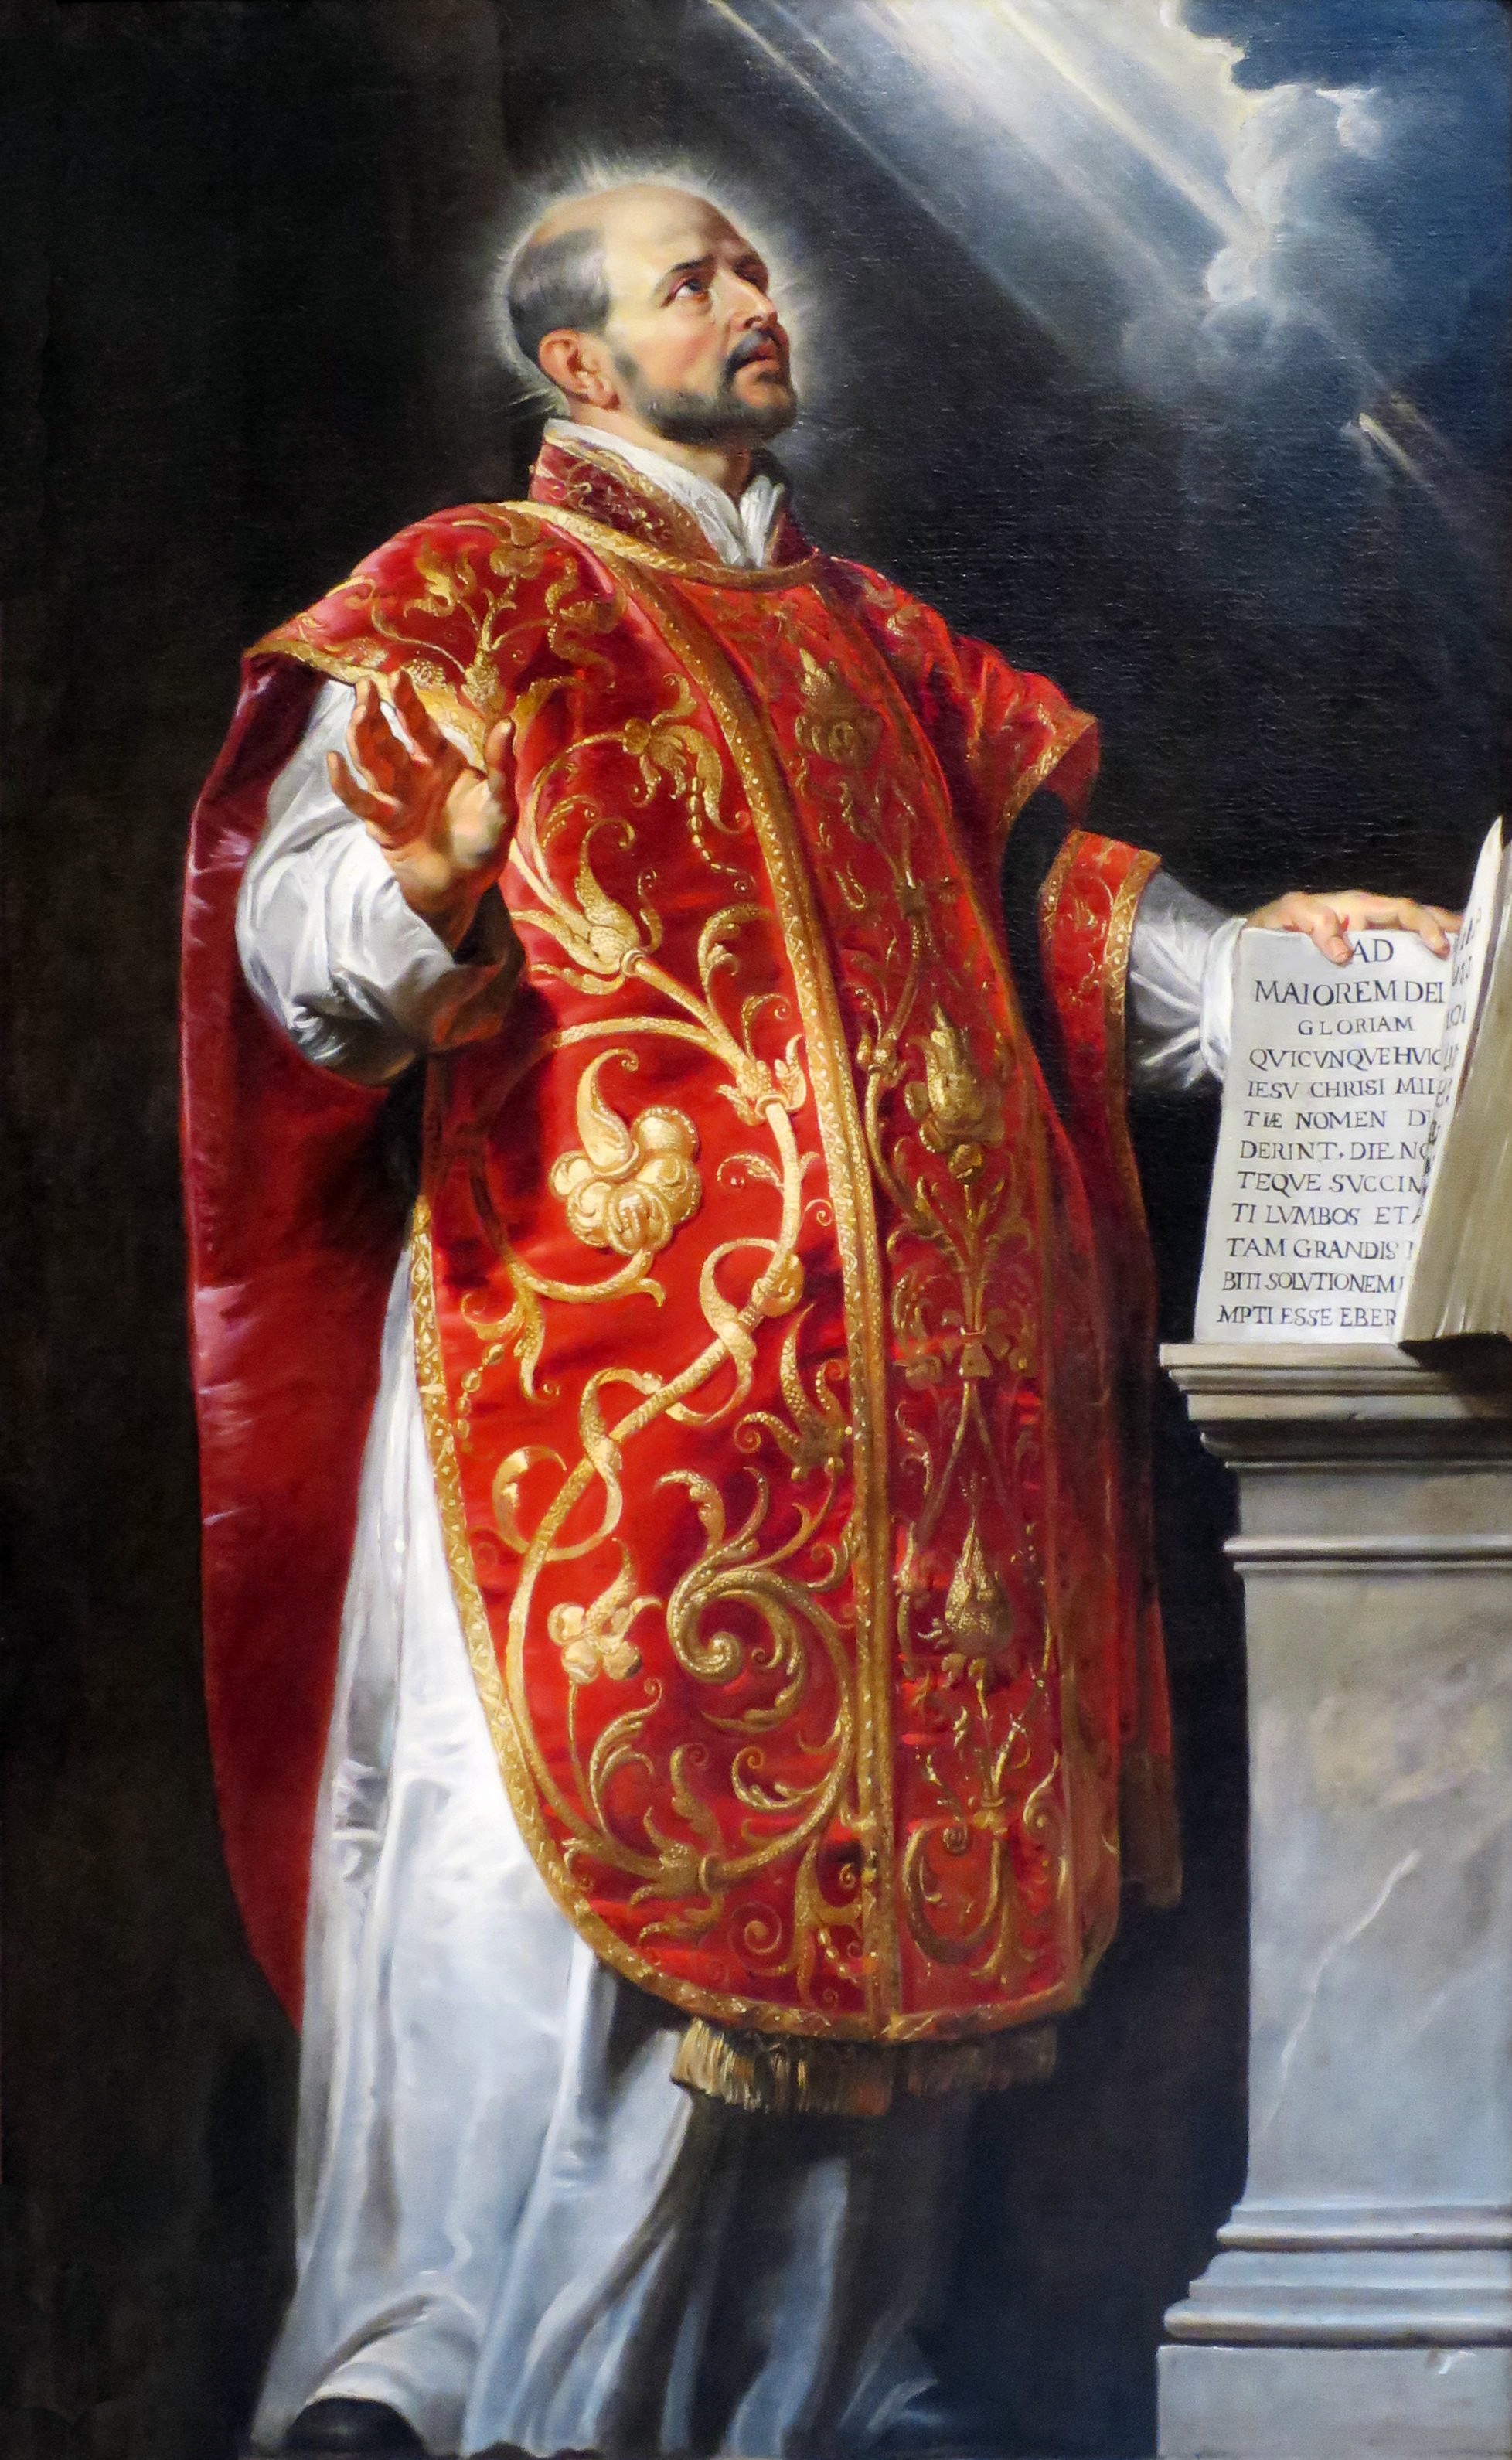 Ignatius: A Brief Introduction to the Theology of Pope Francis